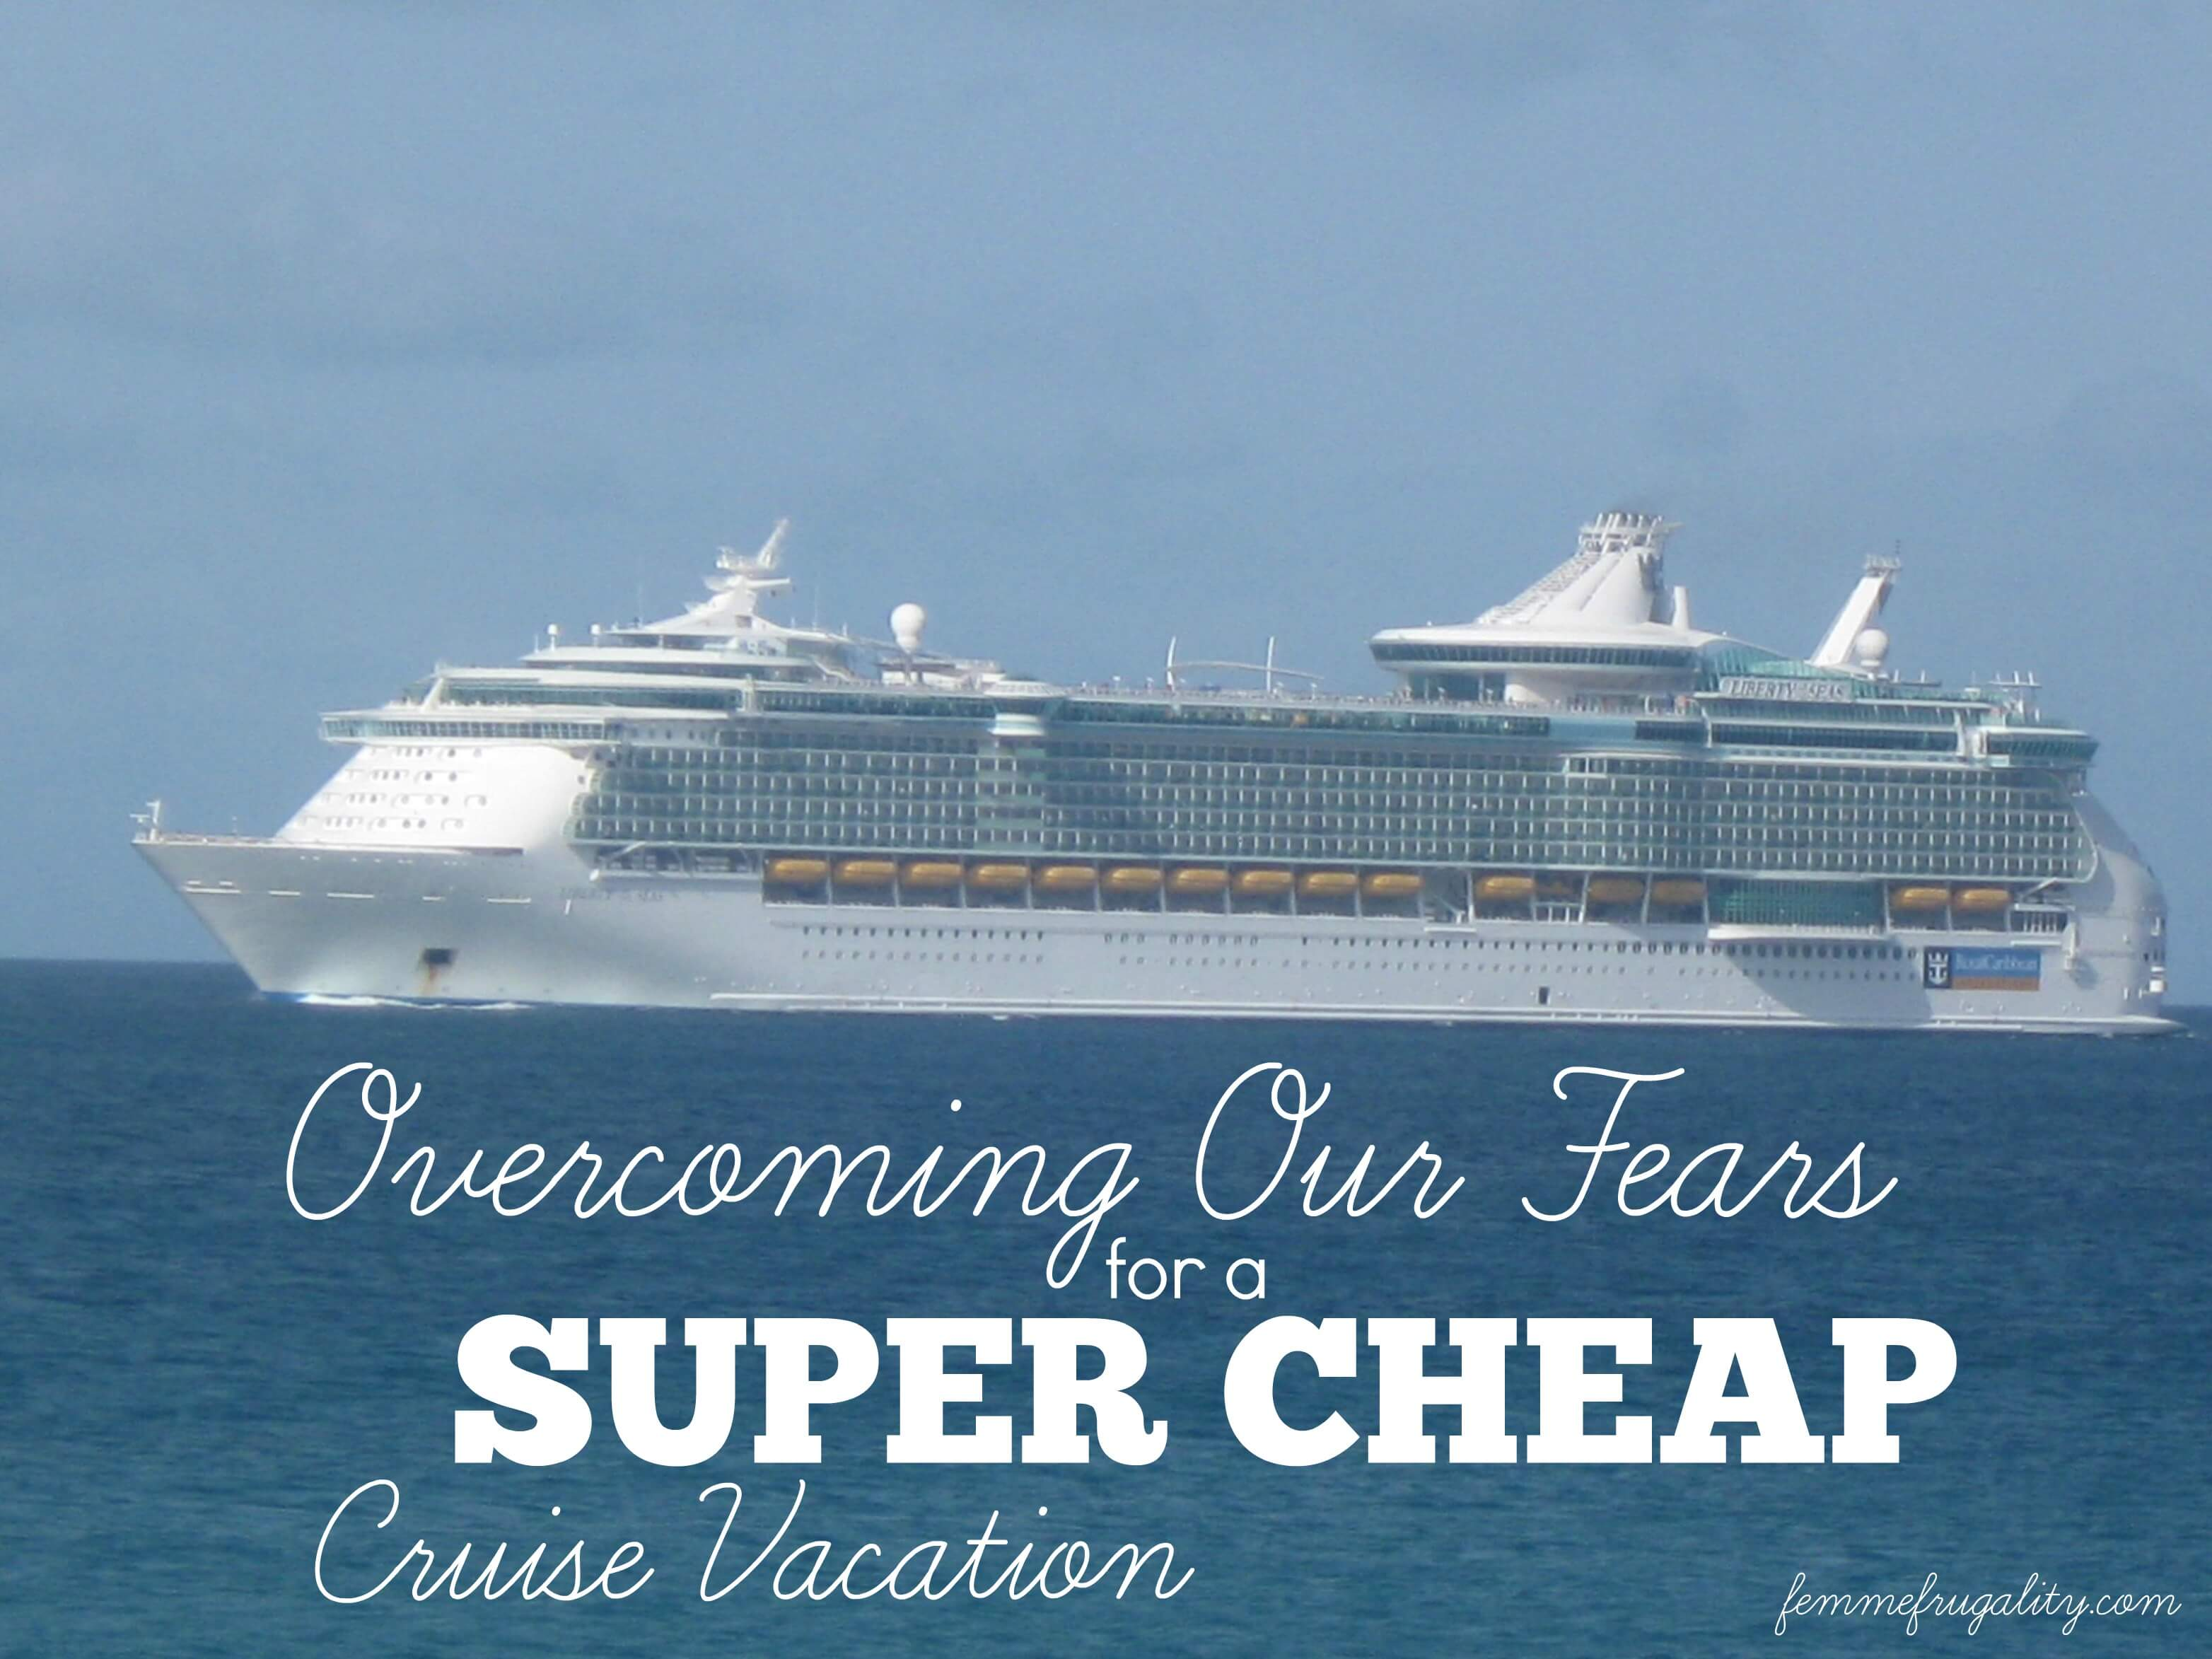 Should a claustrophobe and someone not fond of the open sea go on a cruise just to save money on seeing beautiful shores?